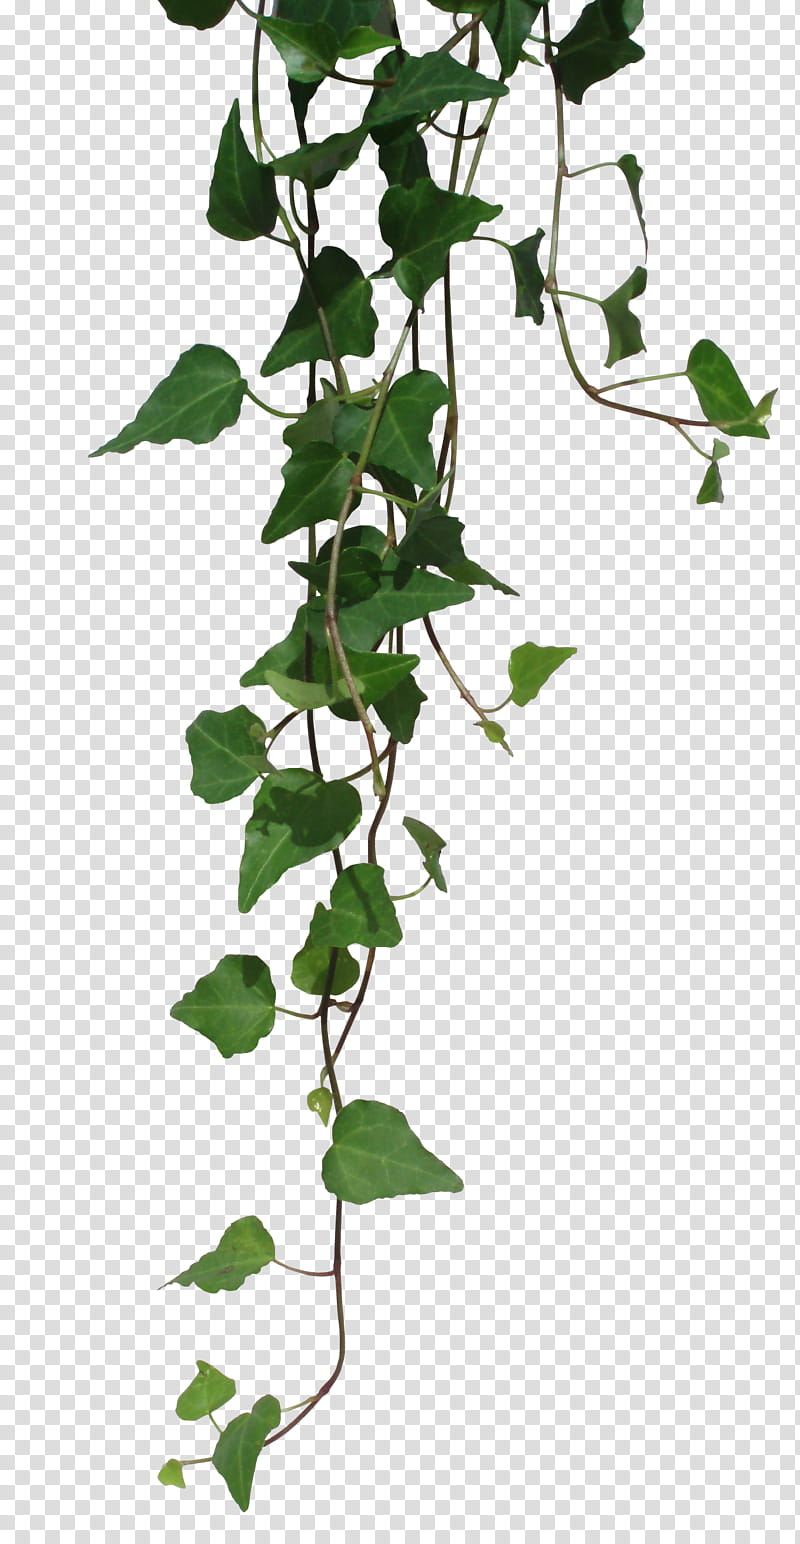 RNDOM green vines transparent background PNG clipart HiClipart 800x1544